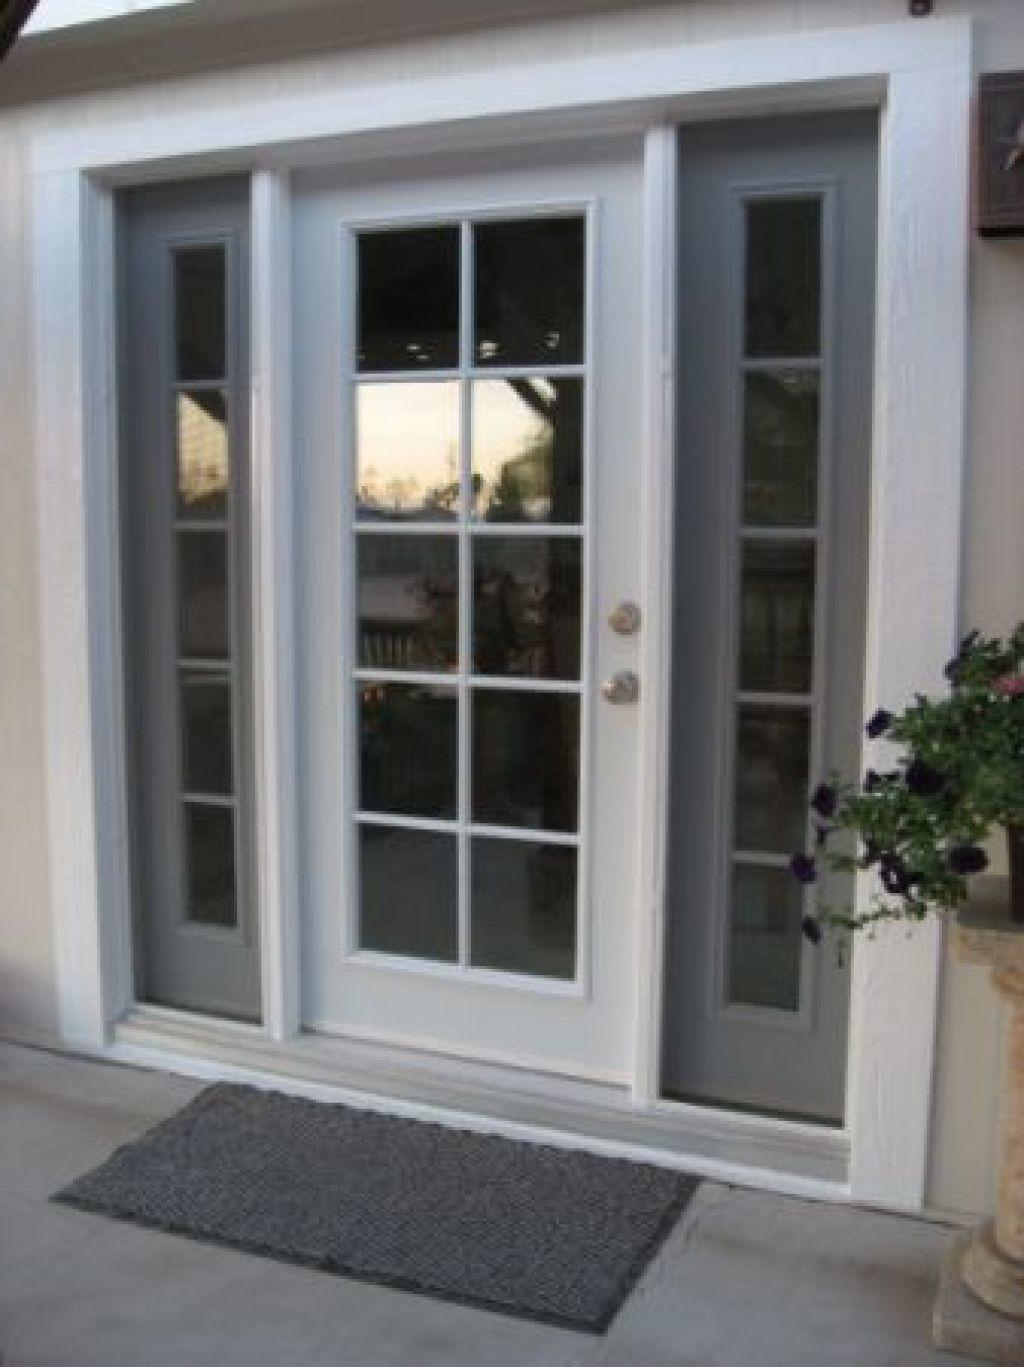 Transcendent Single French Doors Patio Windows